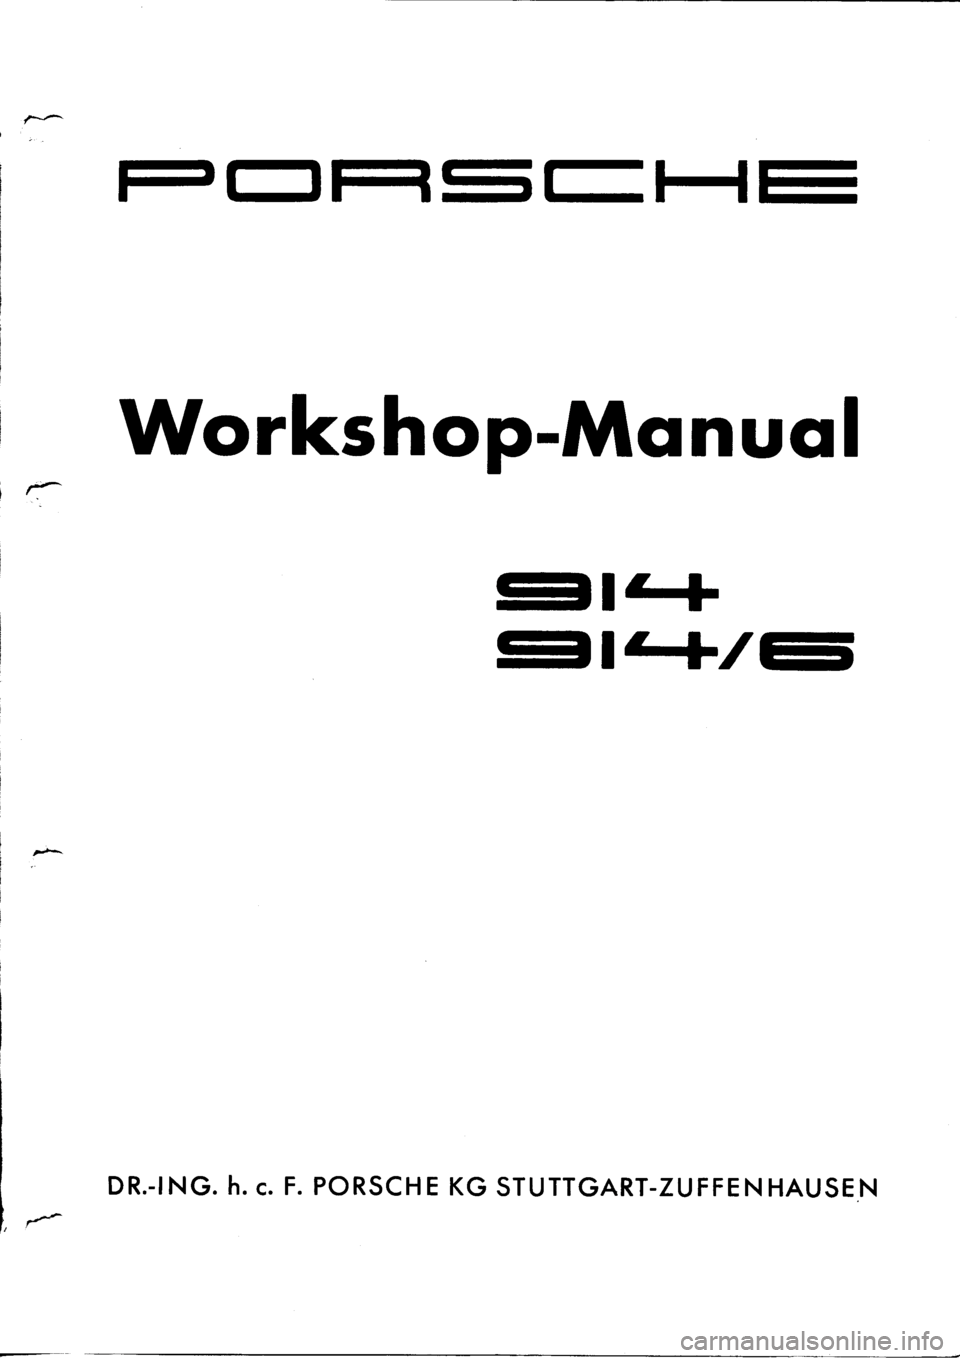 PORSCHE 914 1969 1.G Engine 1 Workshop Manual